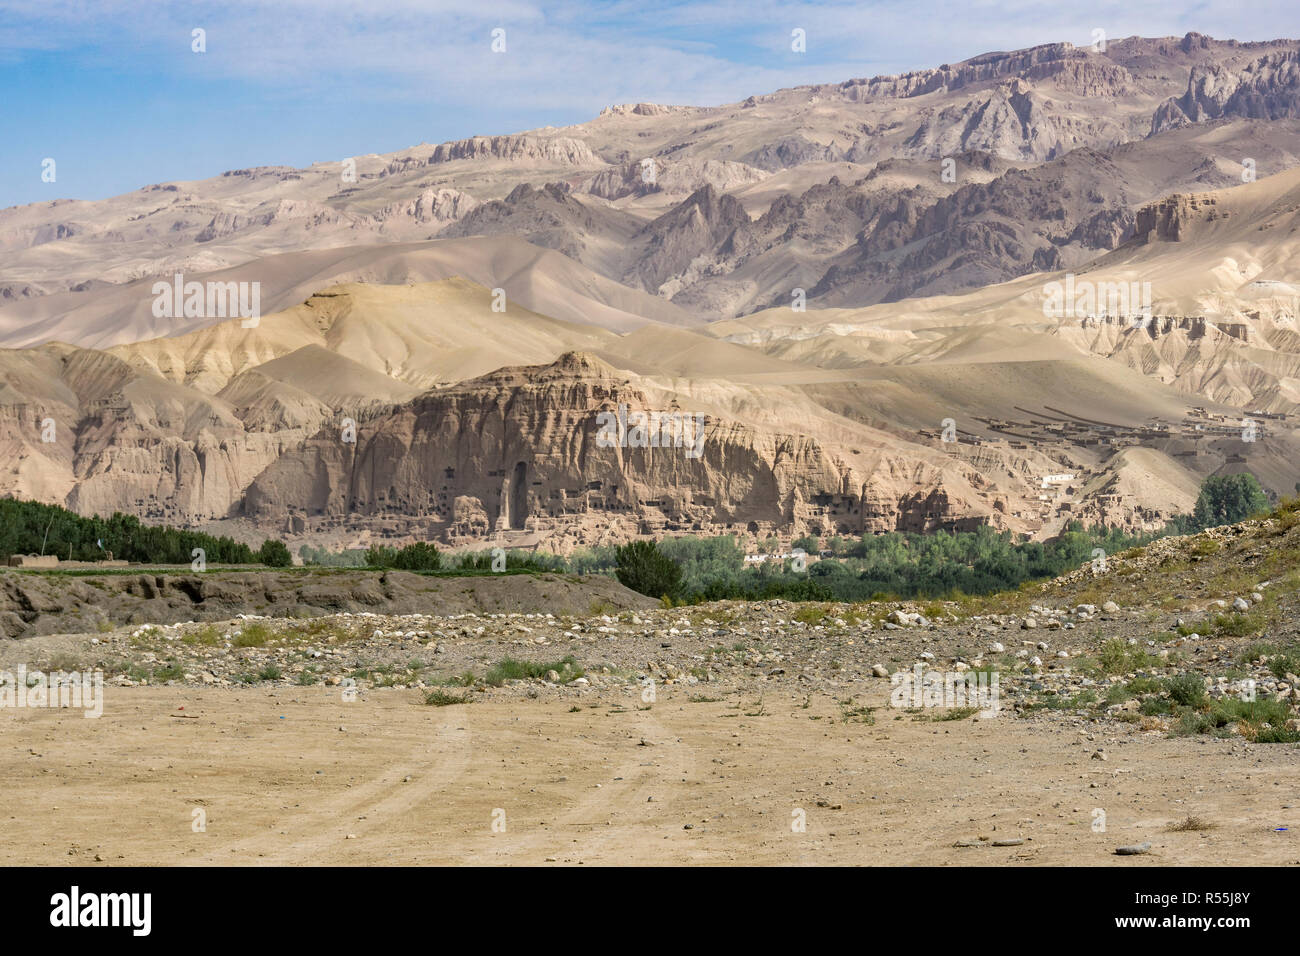 View of Bamiyan Valley - Afghanistan - Stock Image